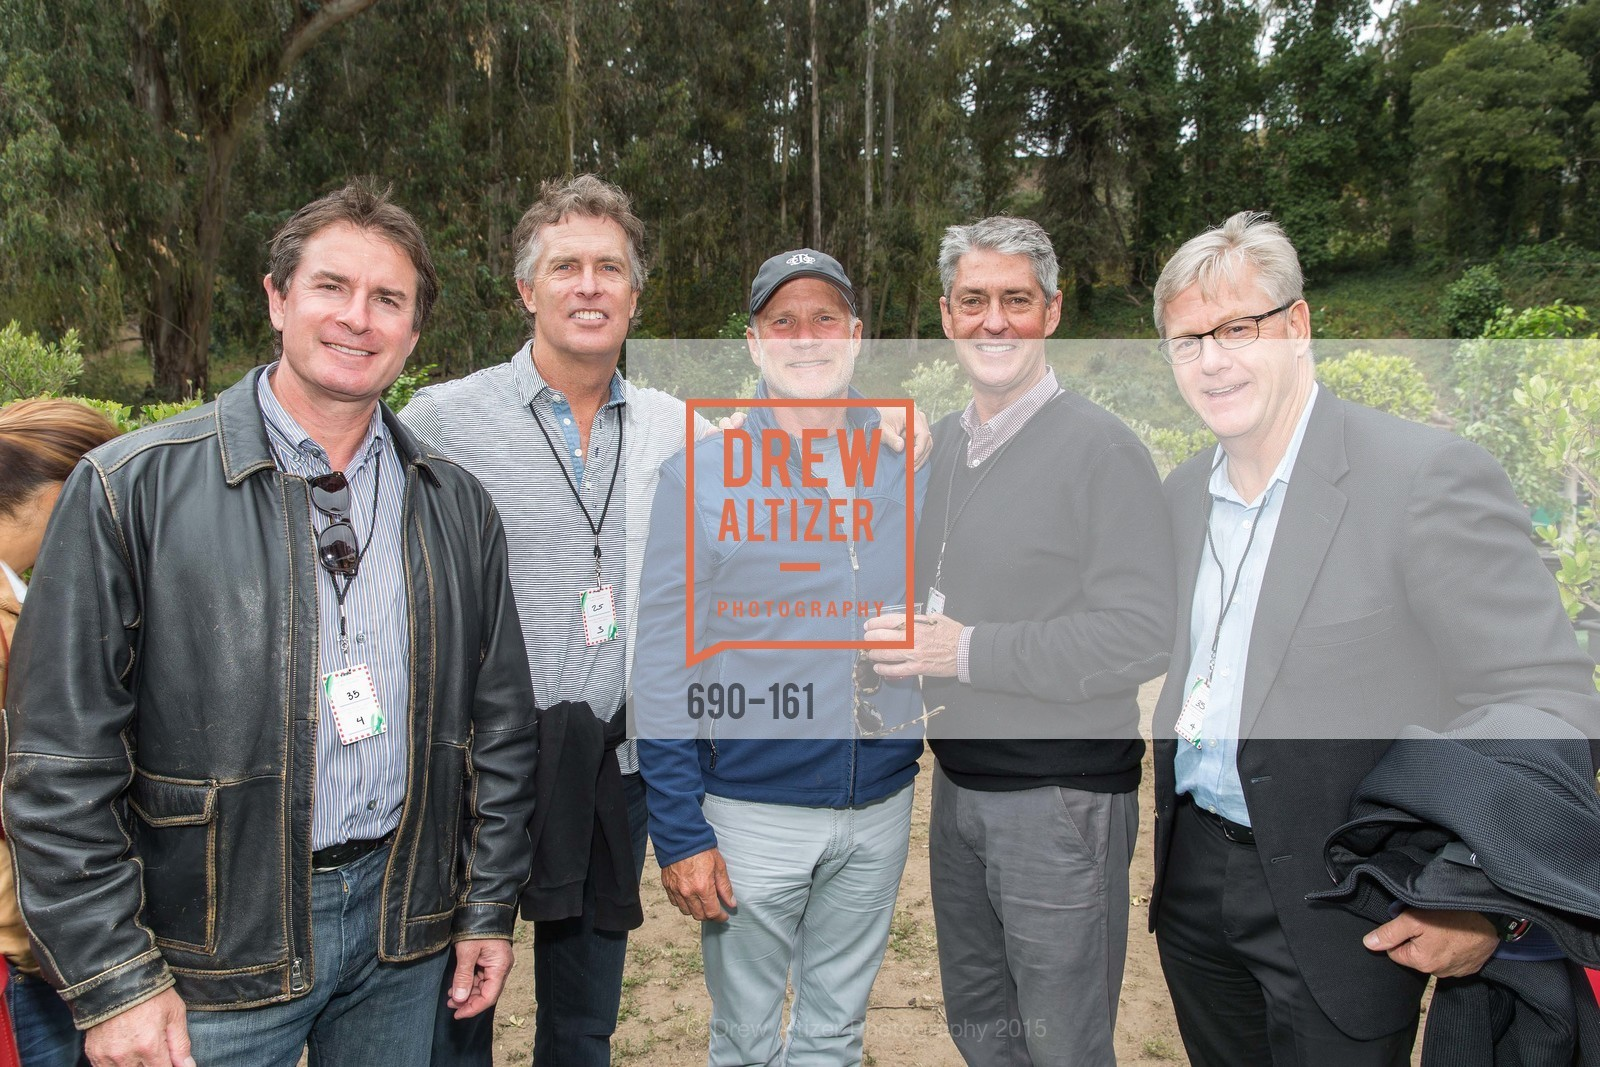 Larry Solomon, Mike Corley, Richard Steiny, Tom Suiter, Bill Ring, THE BIG PICNIC Kicking off  2015 Stern Grove Season, Stern Grove. 2750 19th Avenue, June 14th, 2015,Drew Altizer, Drew Altizer Photography, full-service event agency, private events, San Francisco photographer, photographer California